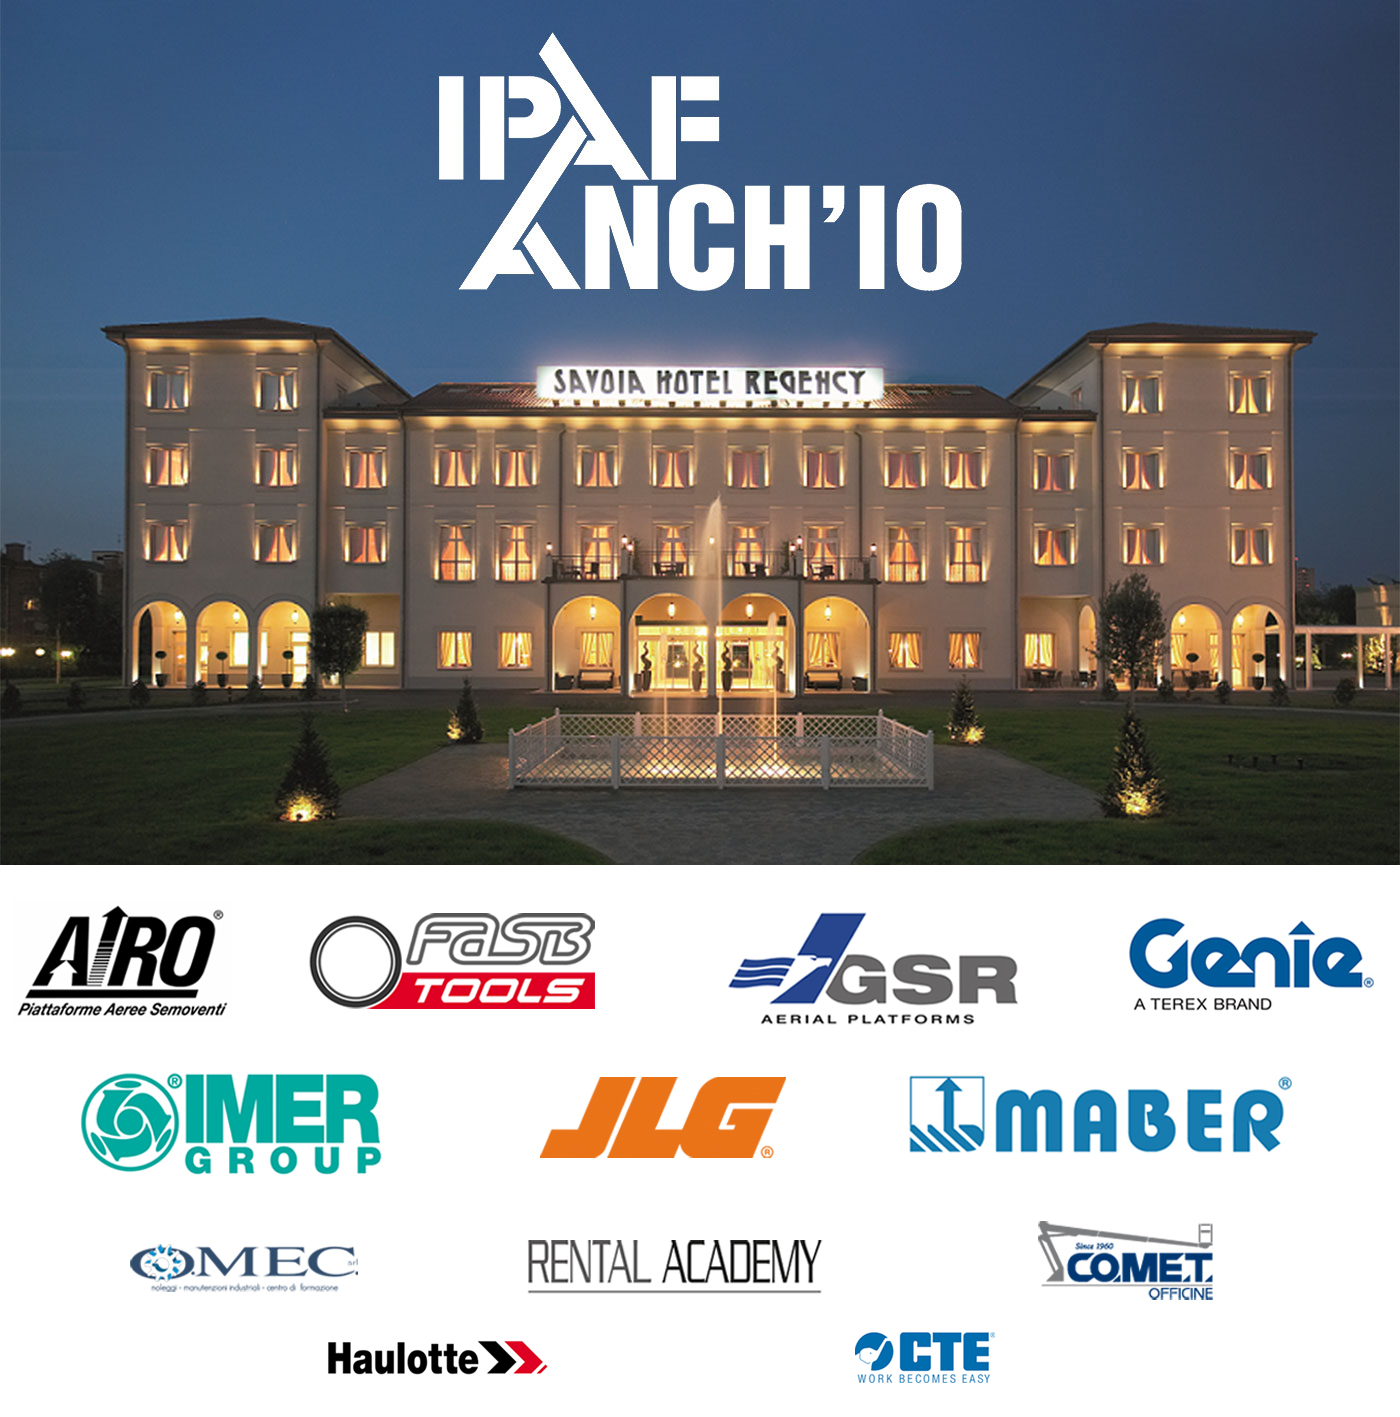 IPAF ANCH'IO at Savoia Hotel Regency, Bologna, Italy